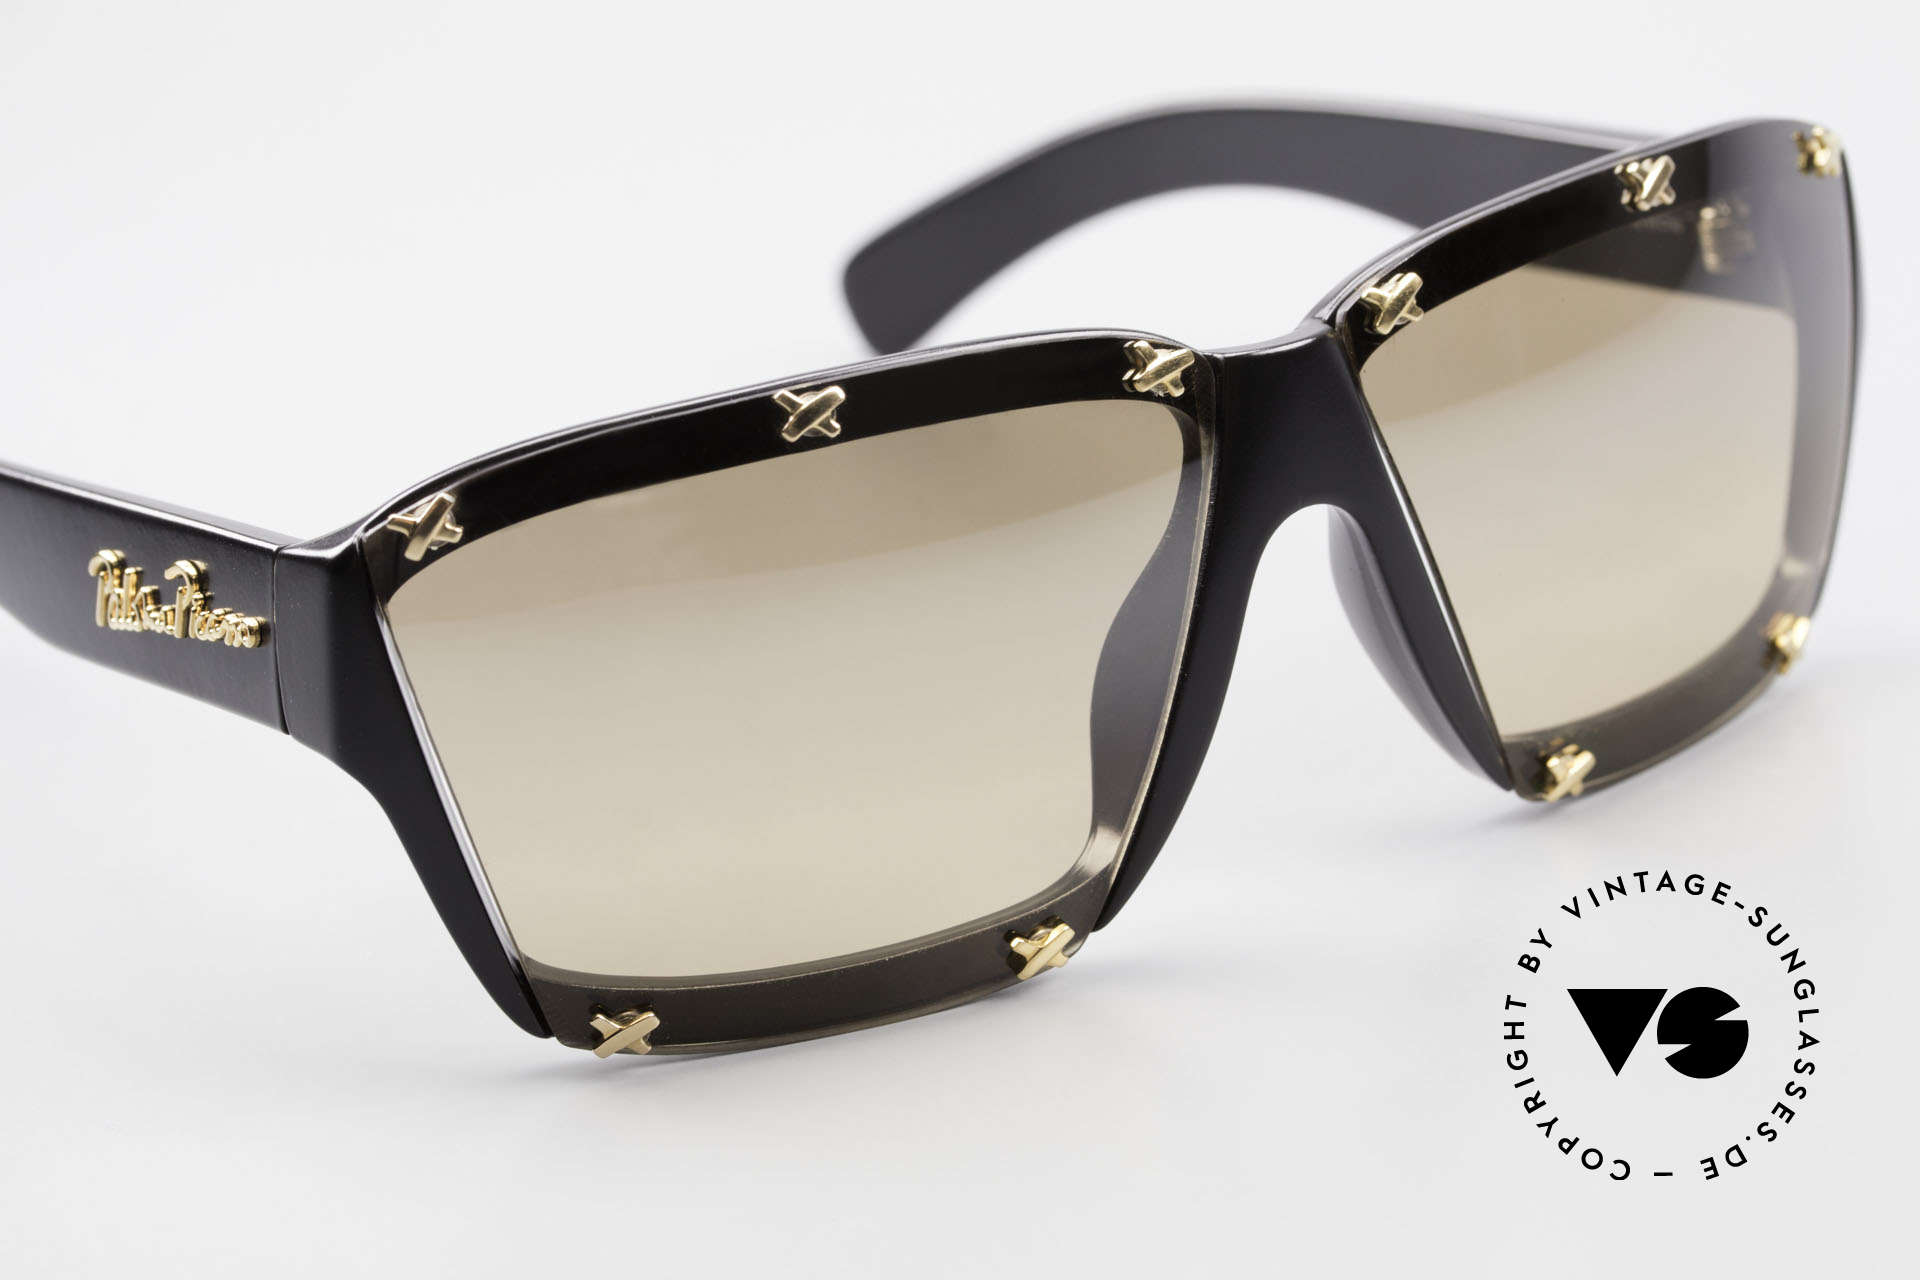 Paloma Picasso 3702 No Retro Sunglasses True 90's, of course never worn (as all our old 90's treasures), Made for Women